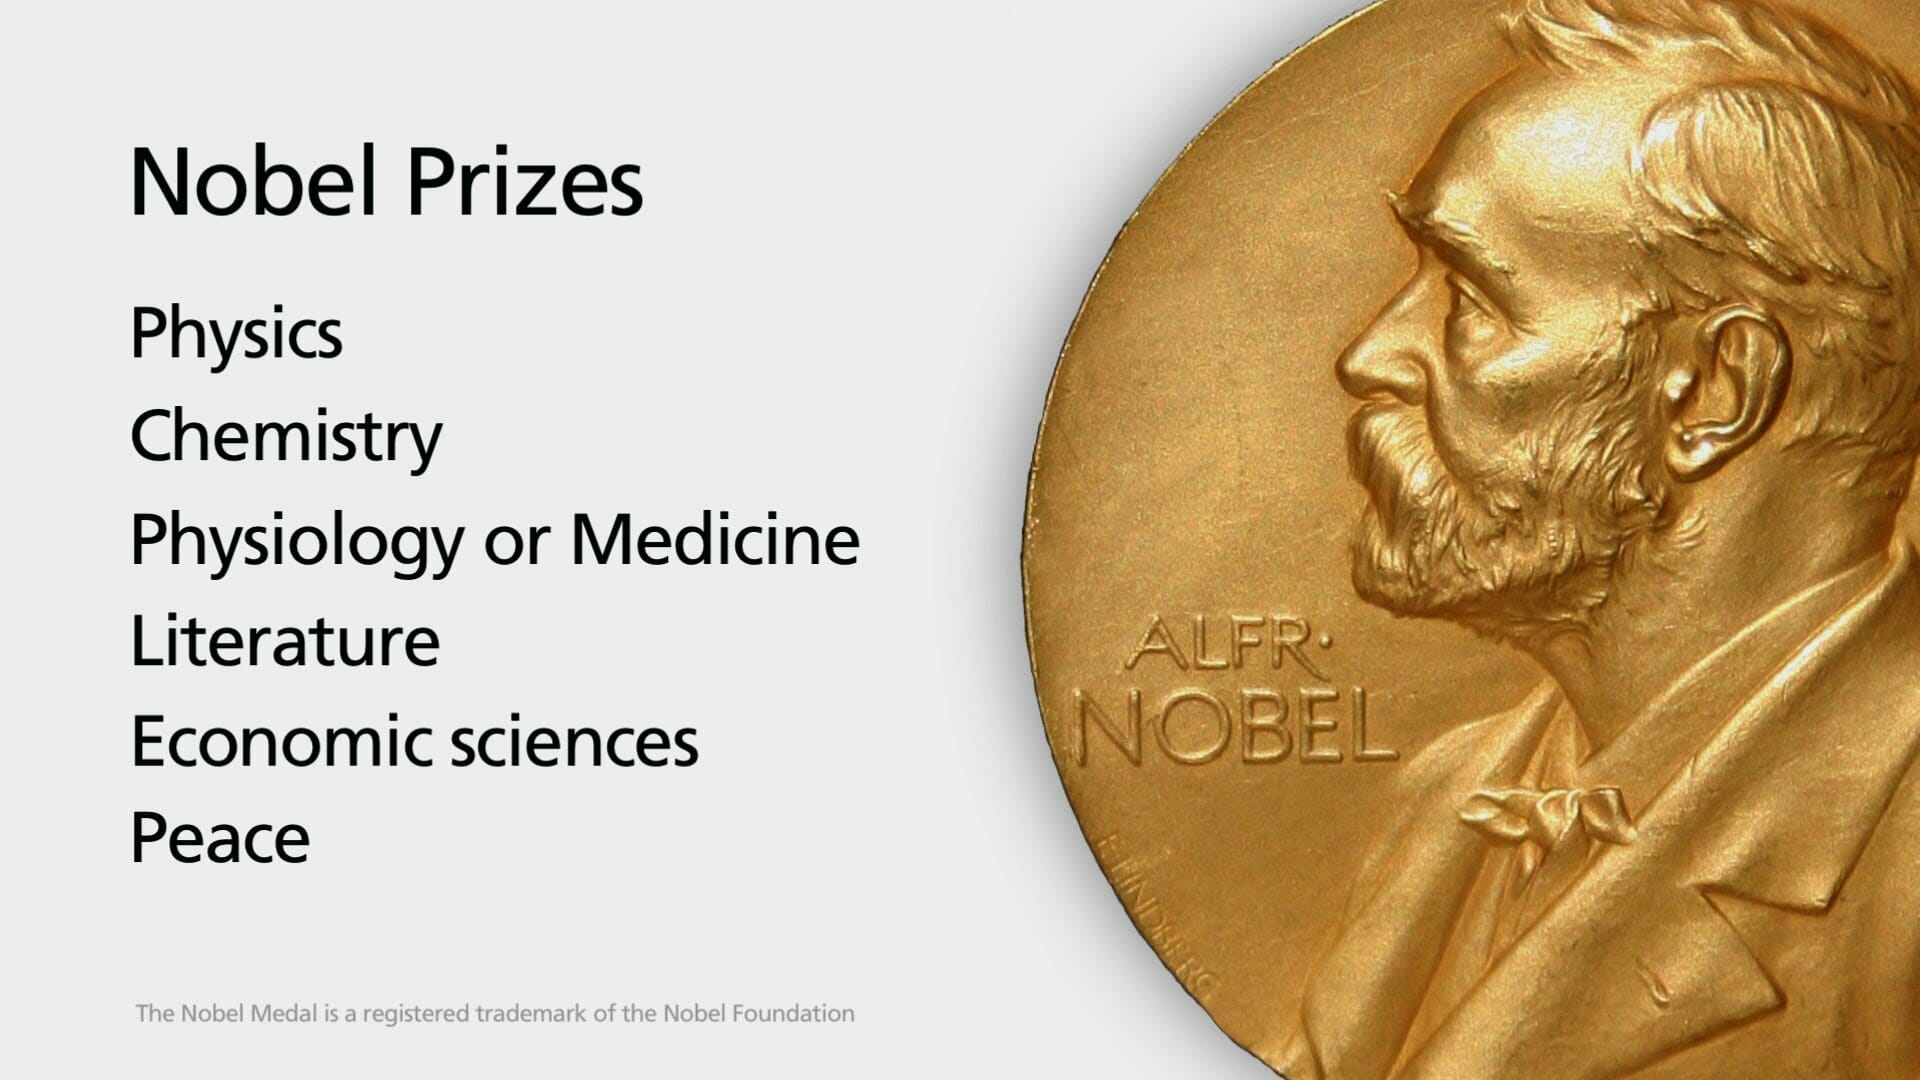 Nobel Prizes Winners and Research Areas